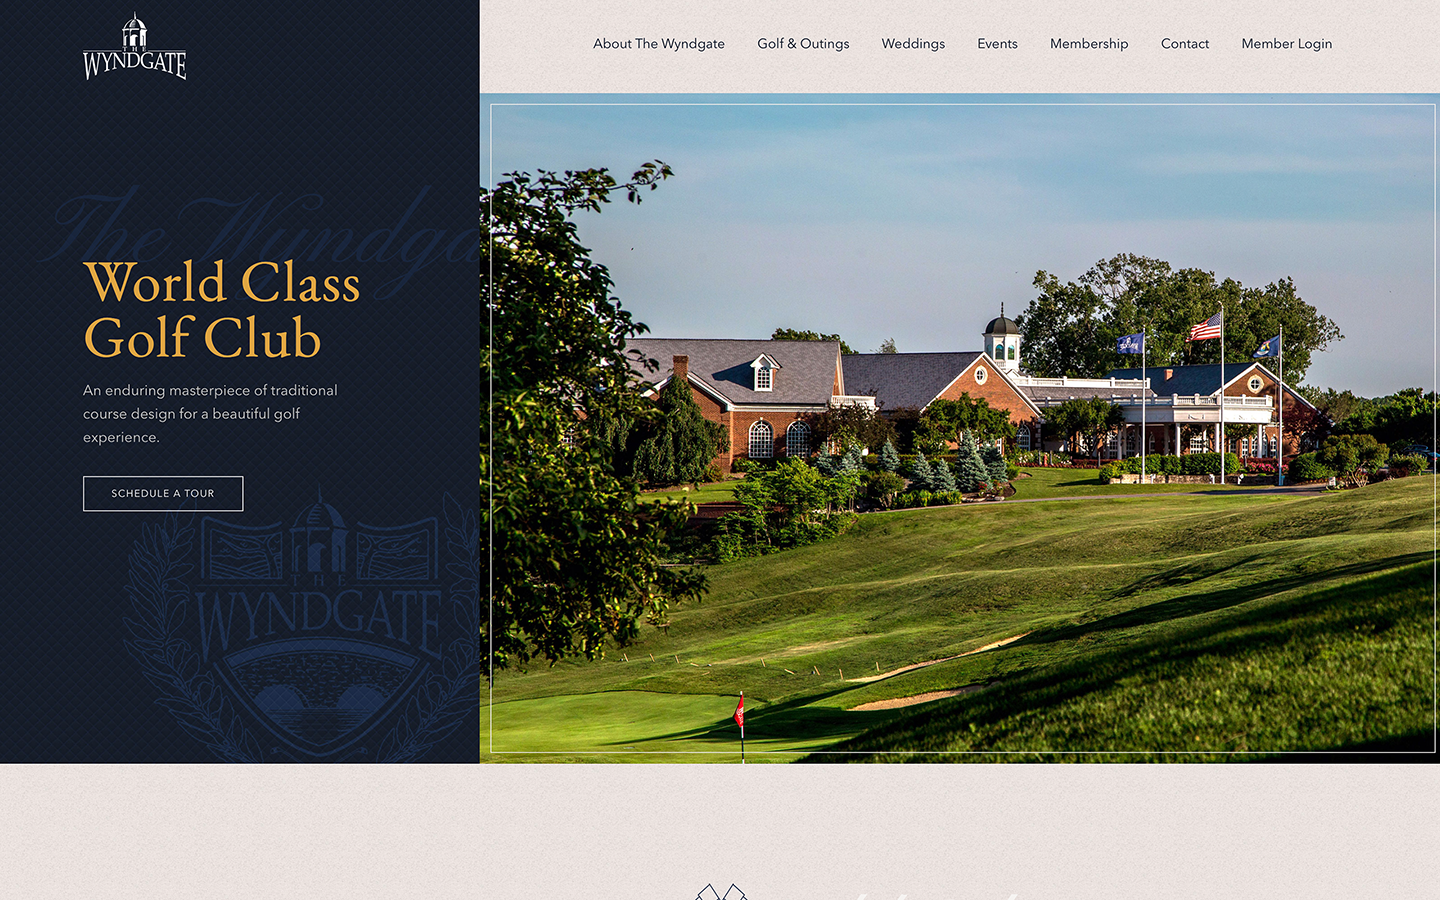 The Wyndgate Country Club 1